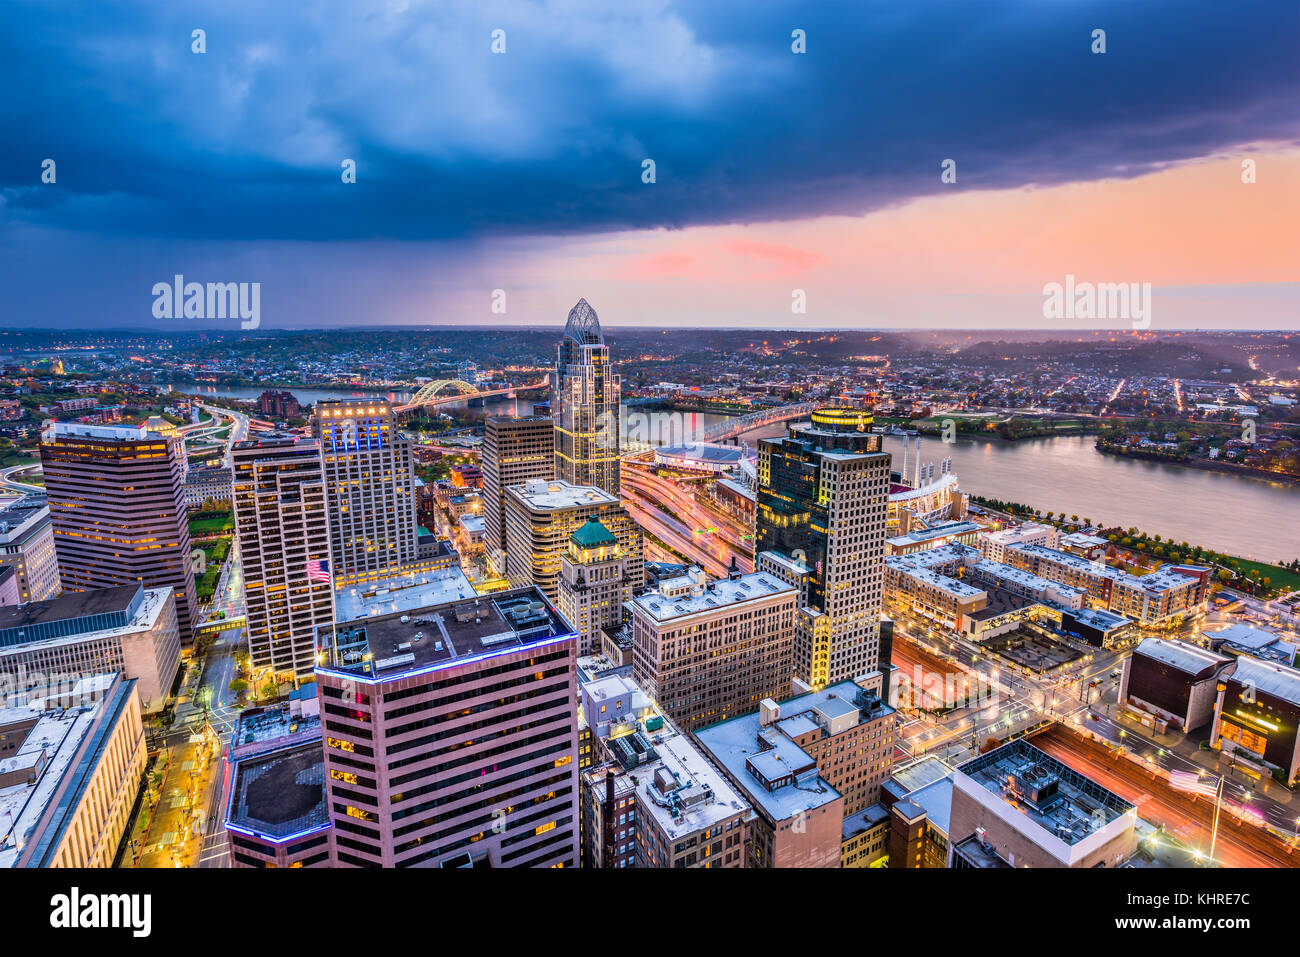 Cincinnati, Ohio, USA cityscape at twilight. - Stock Image